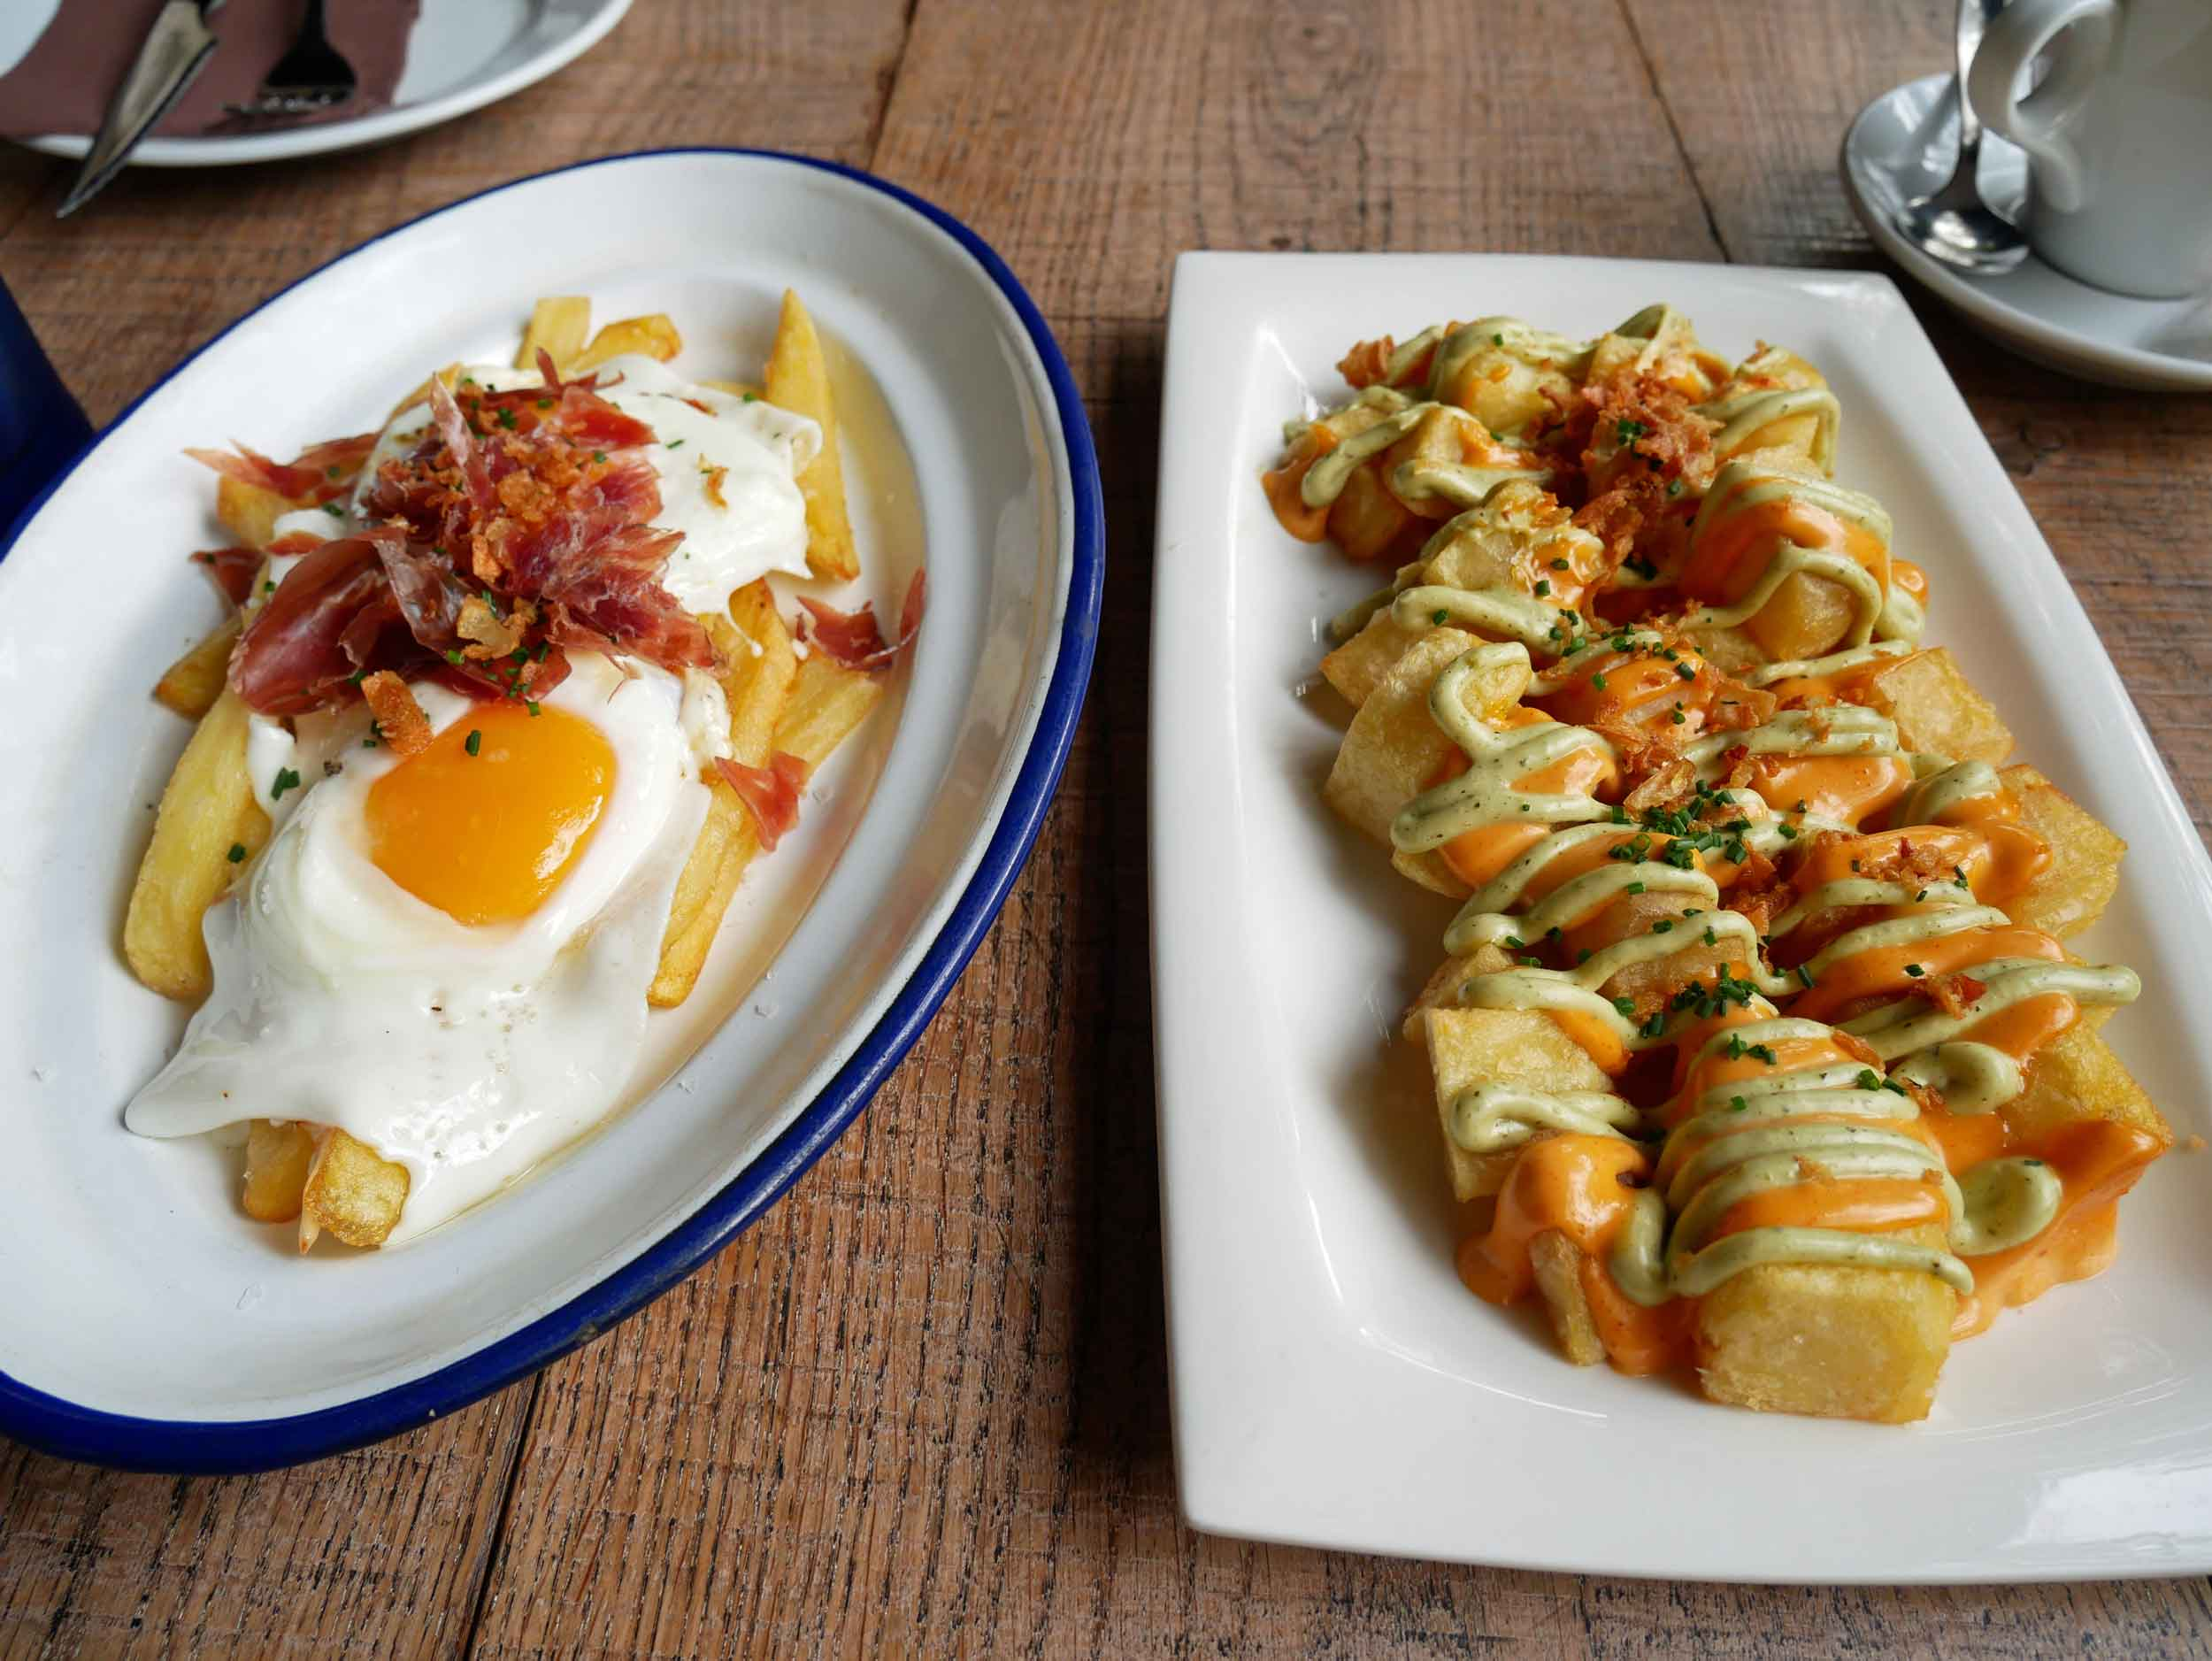 First thing we did when we arrived in Barcelona was head for  patatas bravas  and  fried egg with jam  ón  at Bodega Granados (Sept 18).